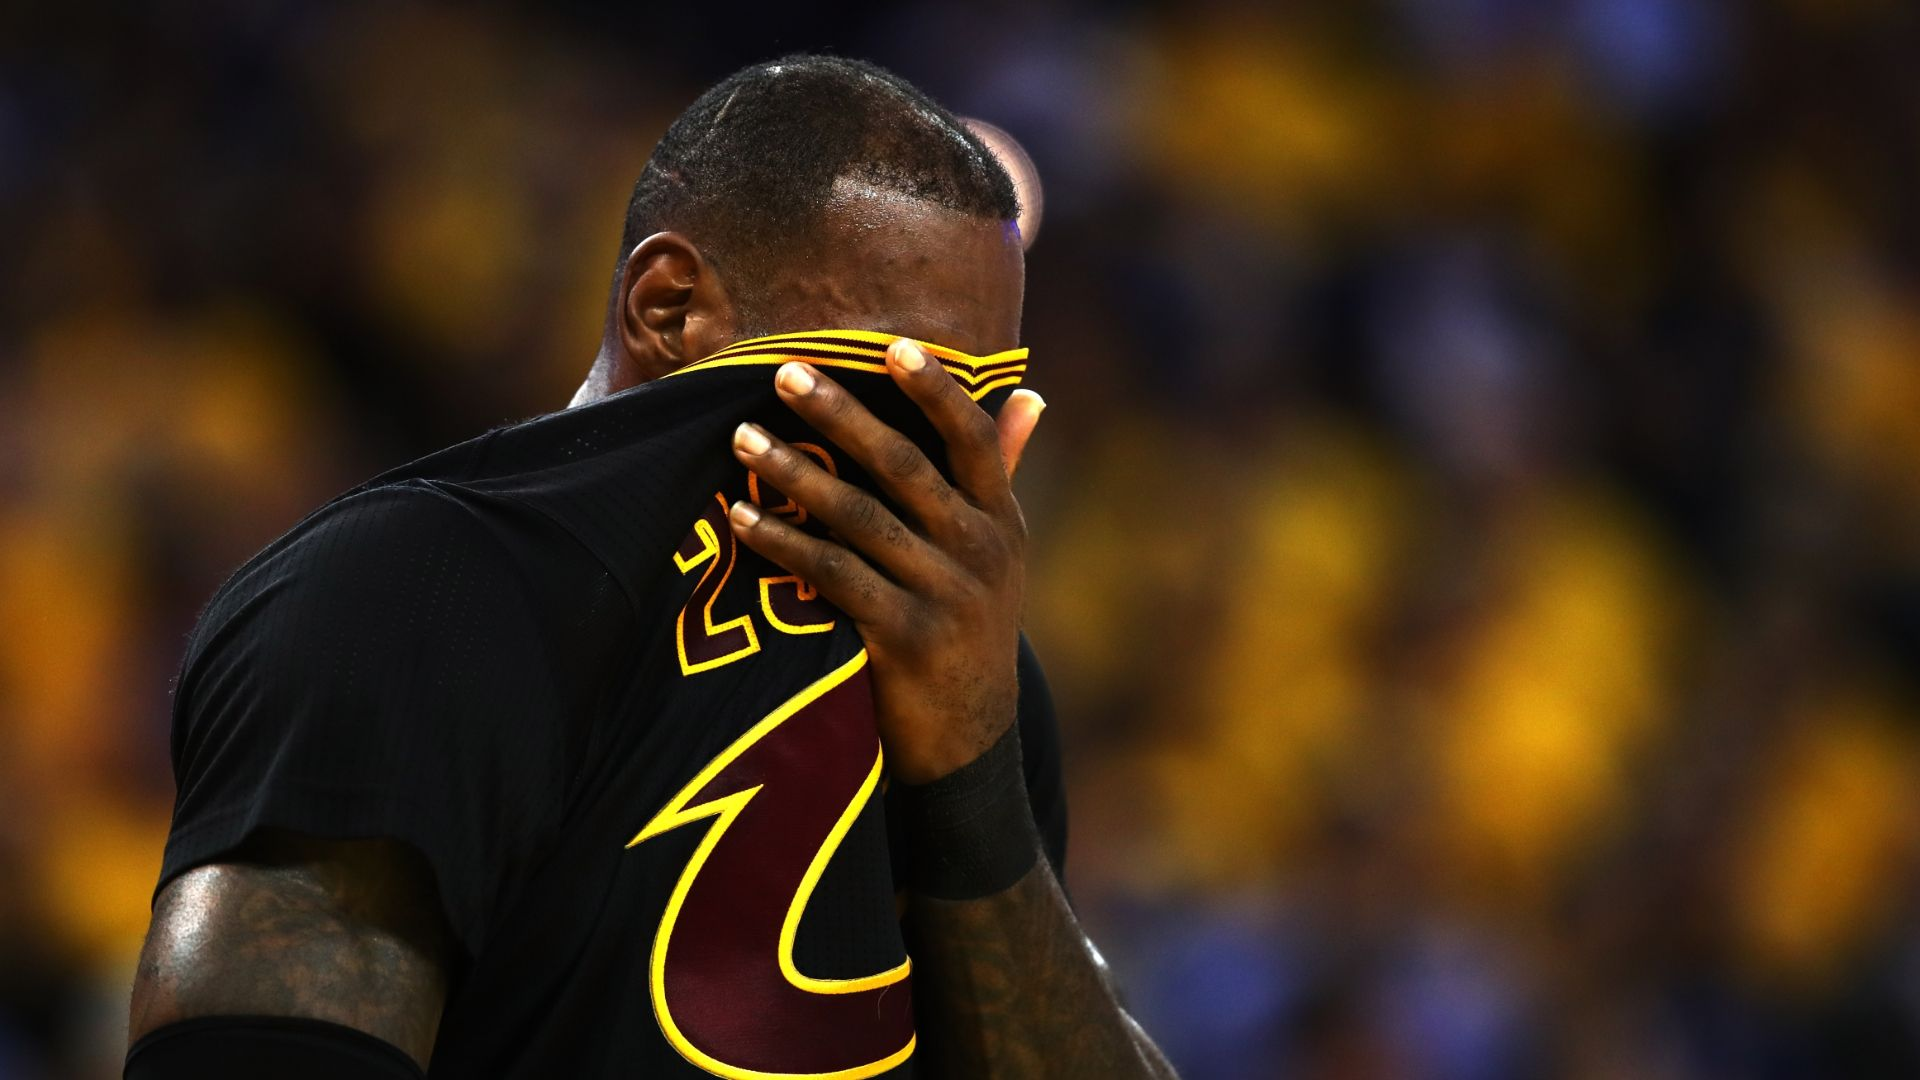 Cavs down but not out